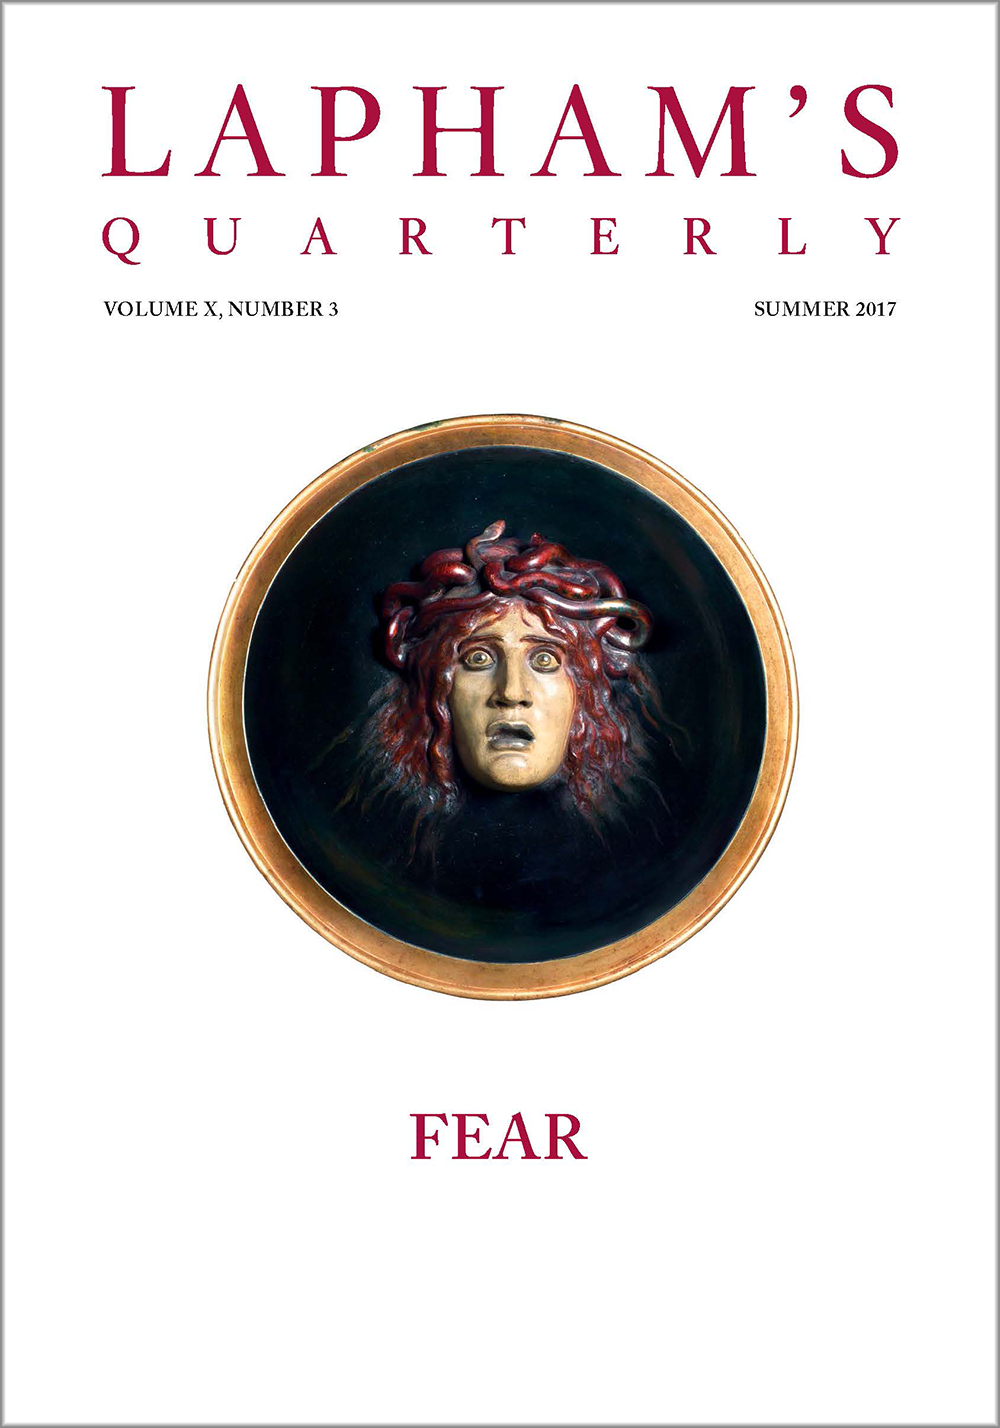 Fear, the Summer 2017 issue of Lapham's Quarterly.